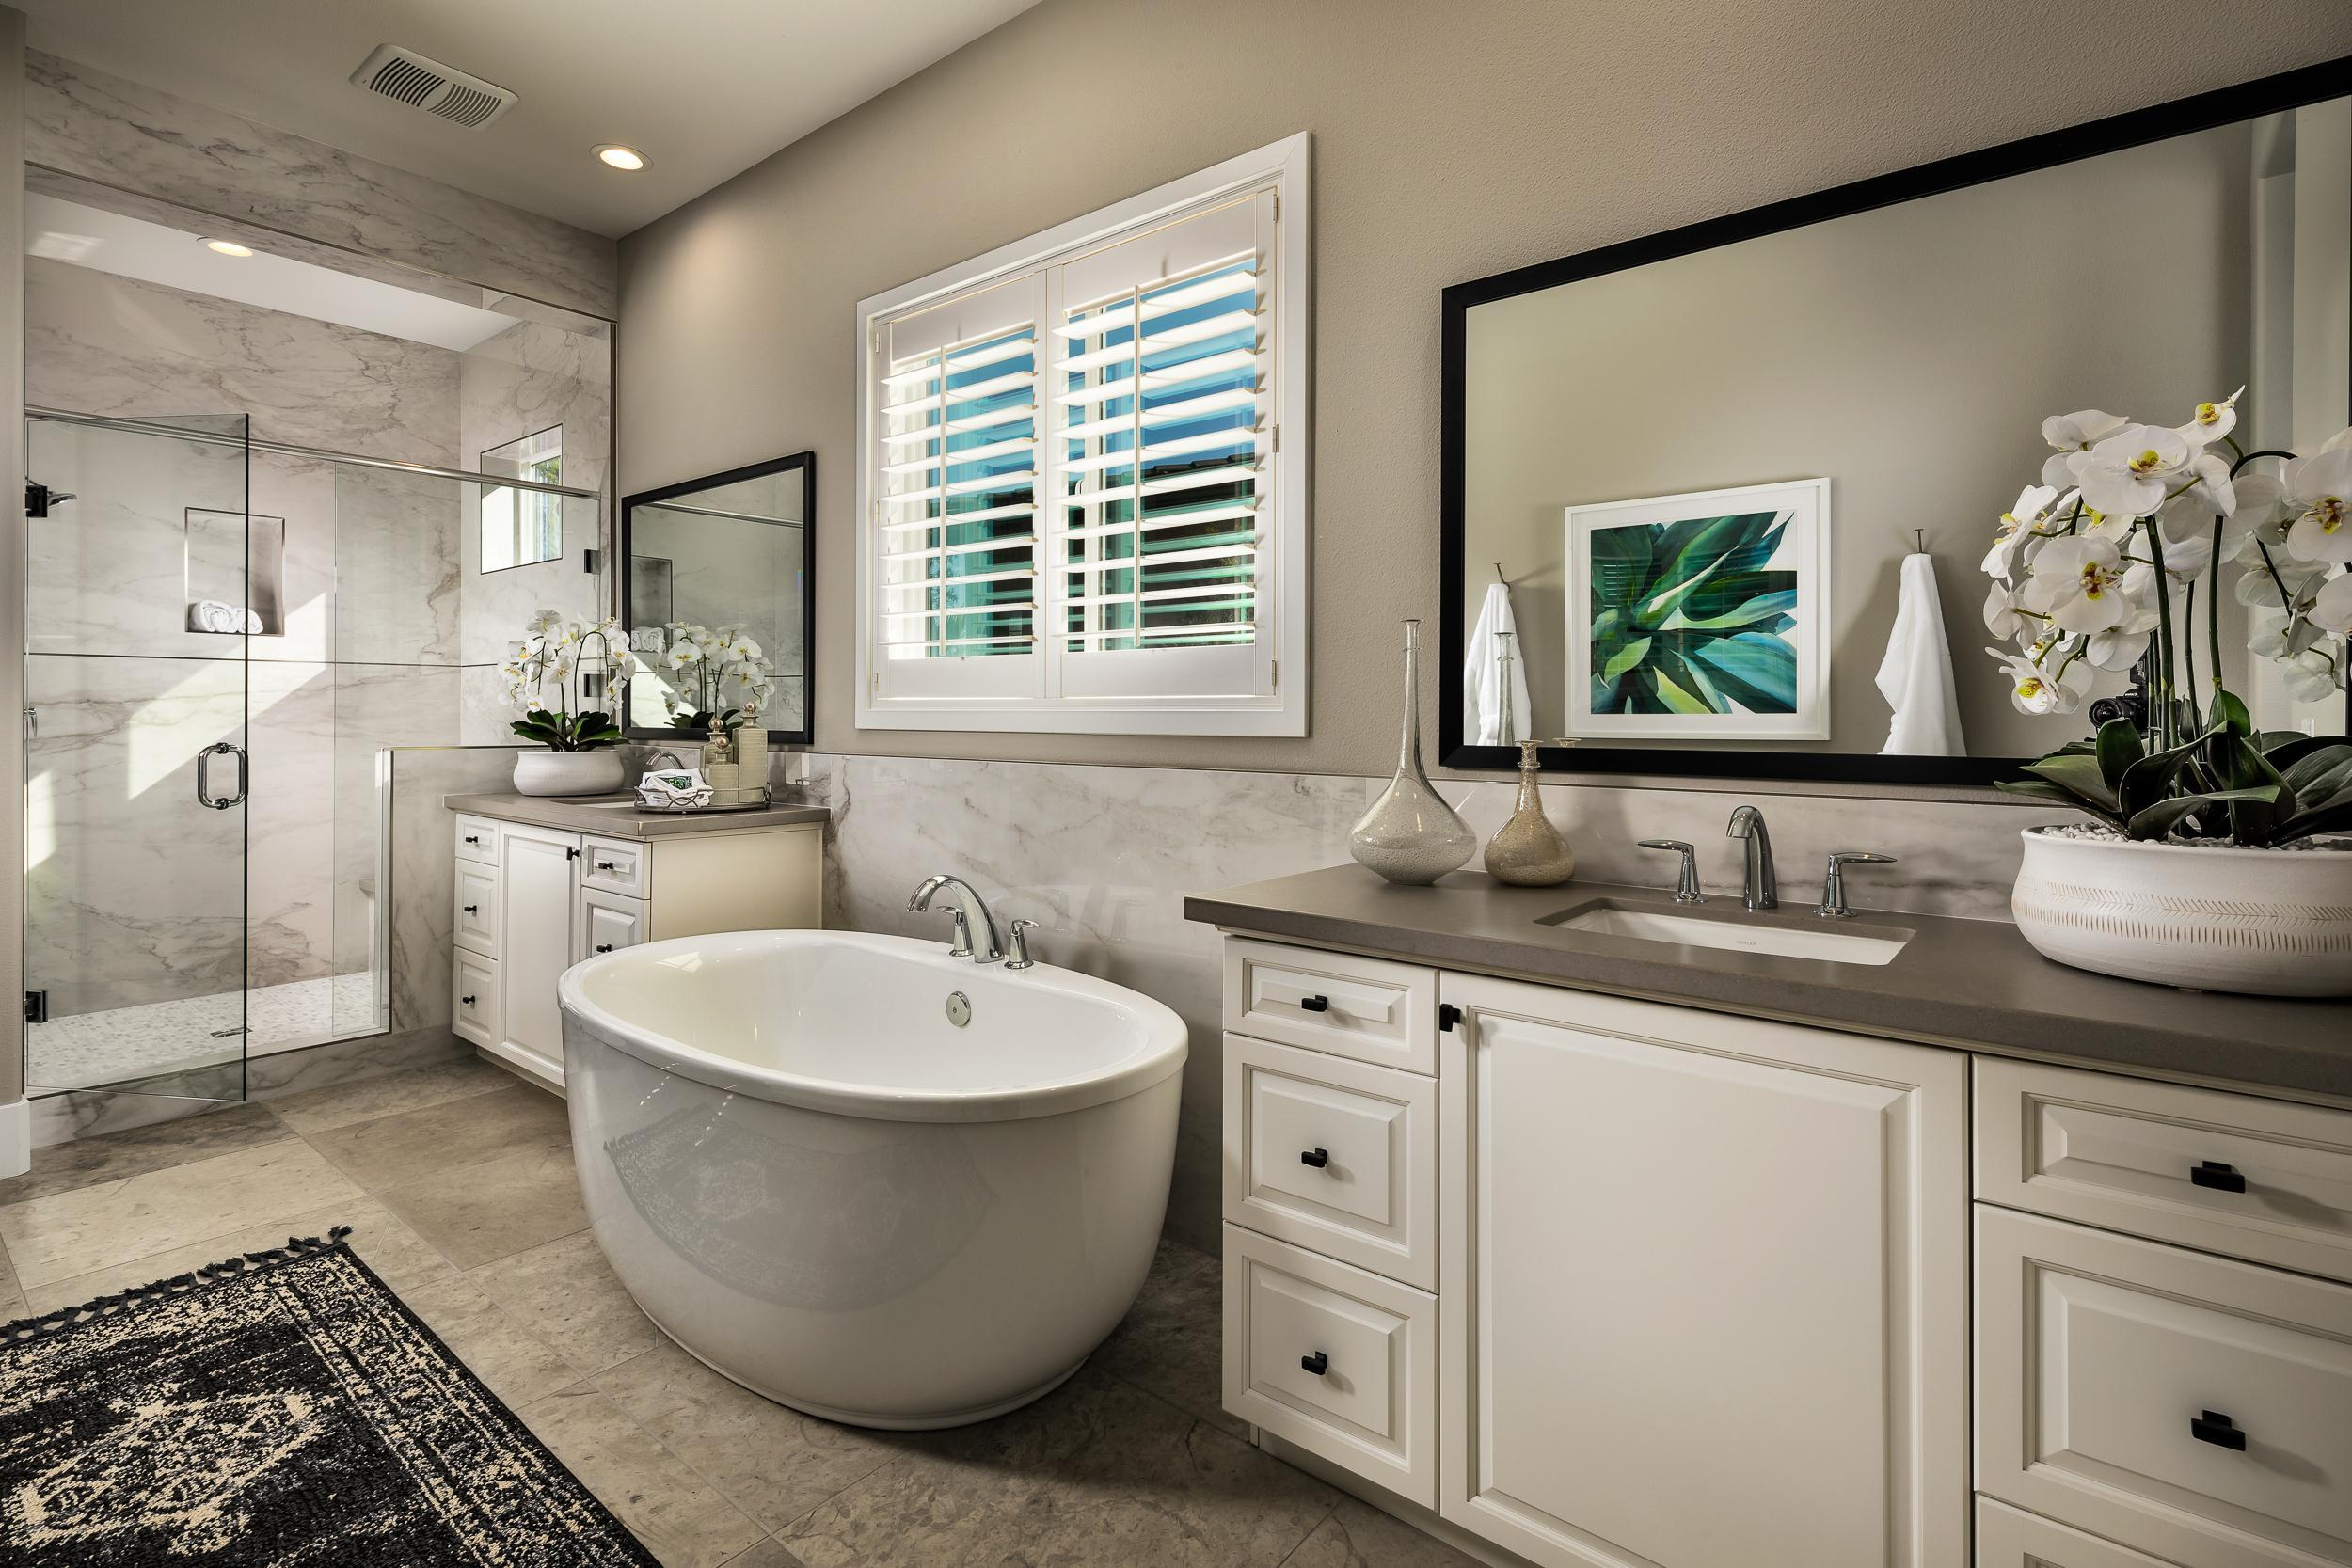 Bathroom featured in the Live Oak By McCaffrey Homes in Fresno, CA